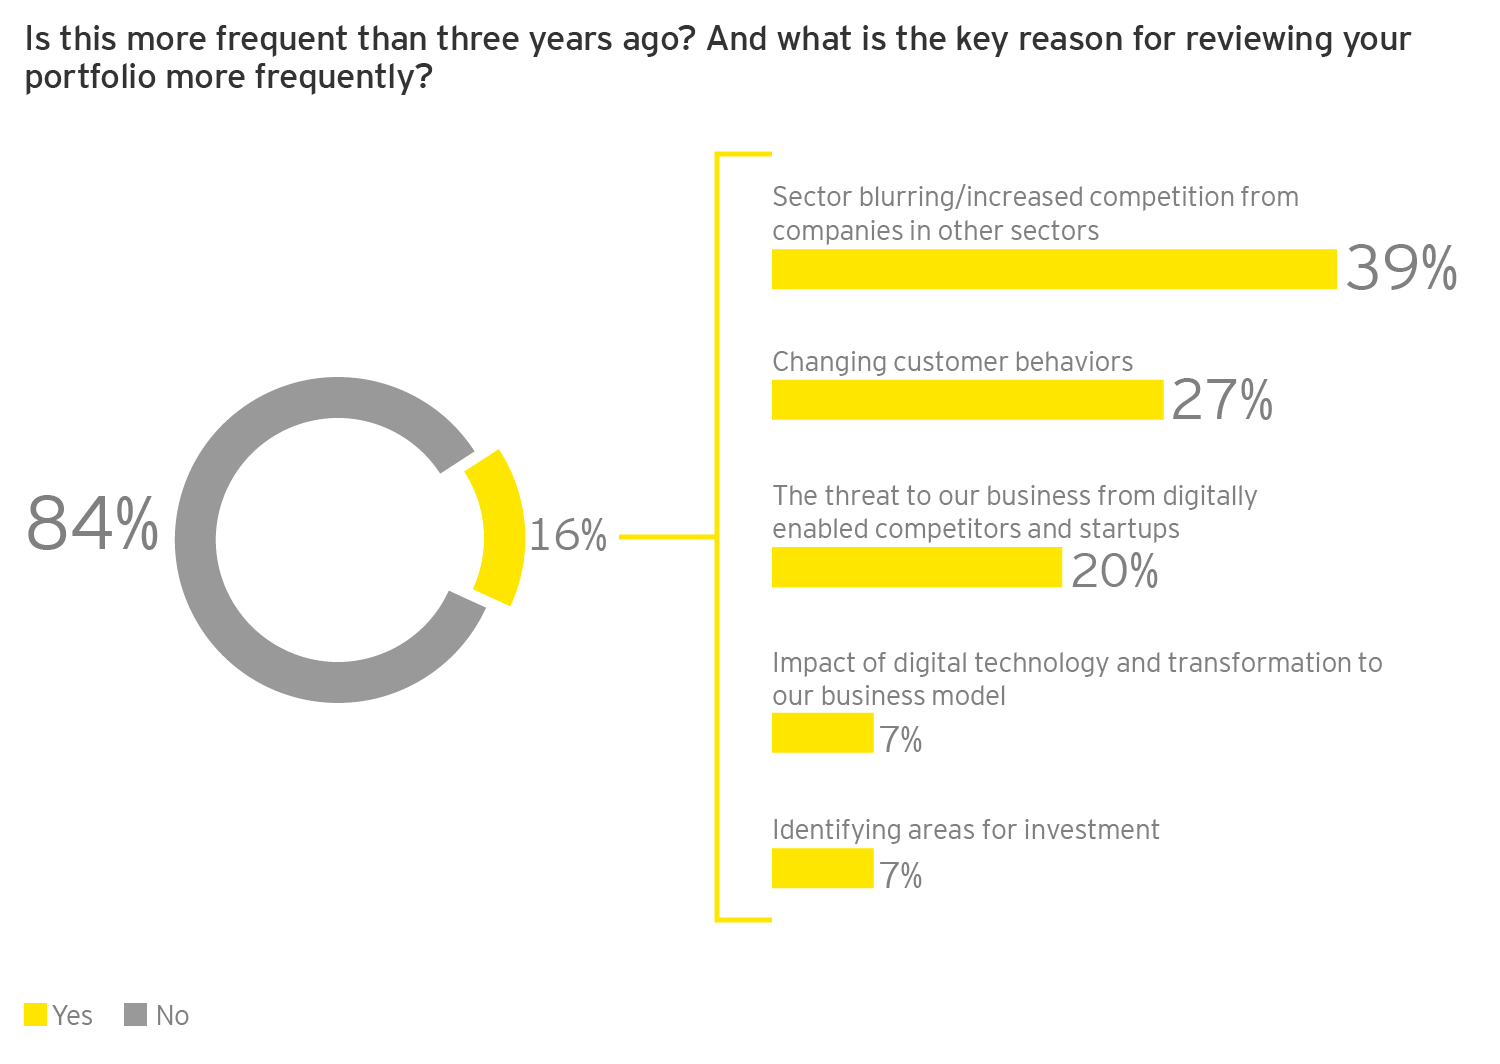 EY - Q: Is this more frequent than three years ago? And what is the key reason for reviewing your portfolio more frequently